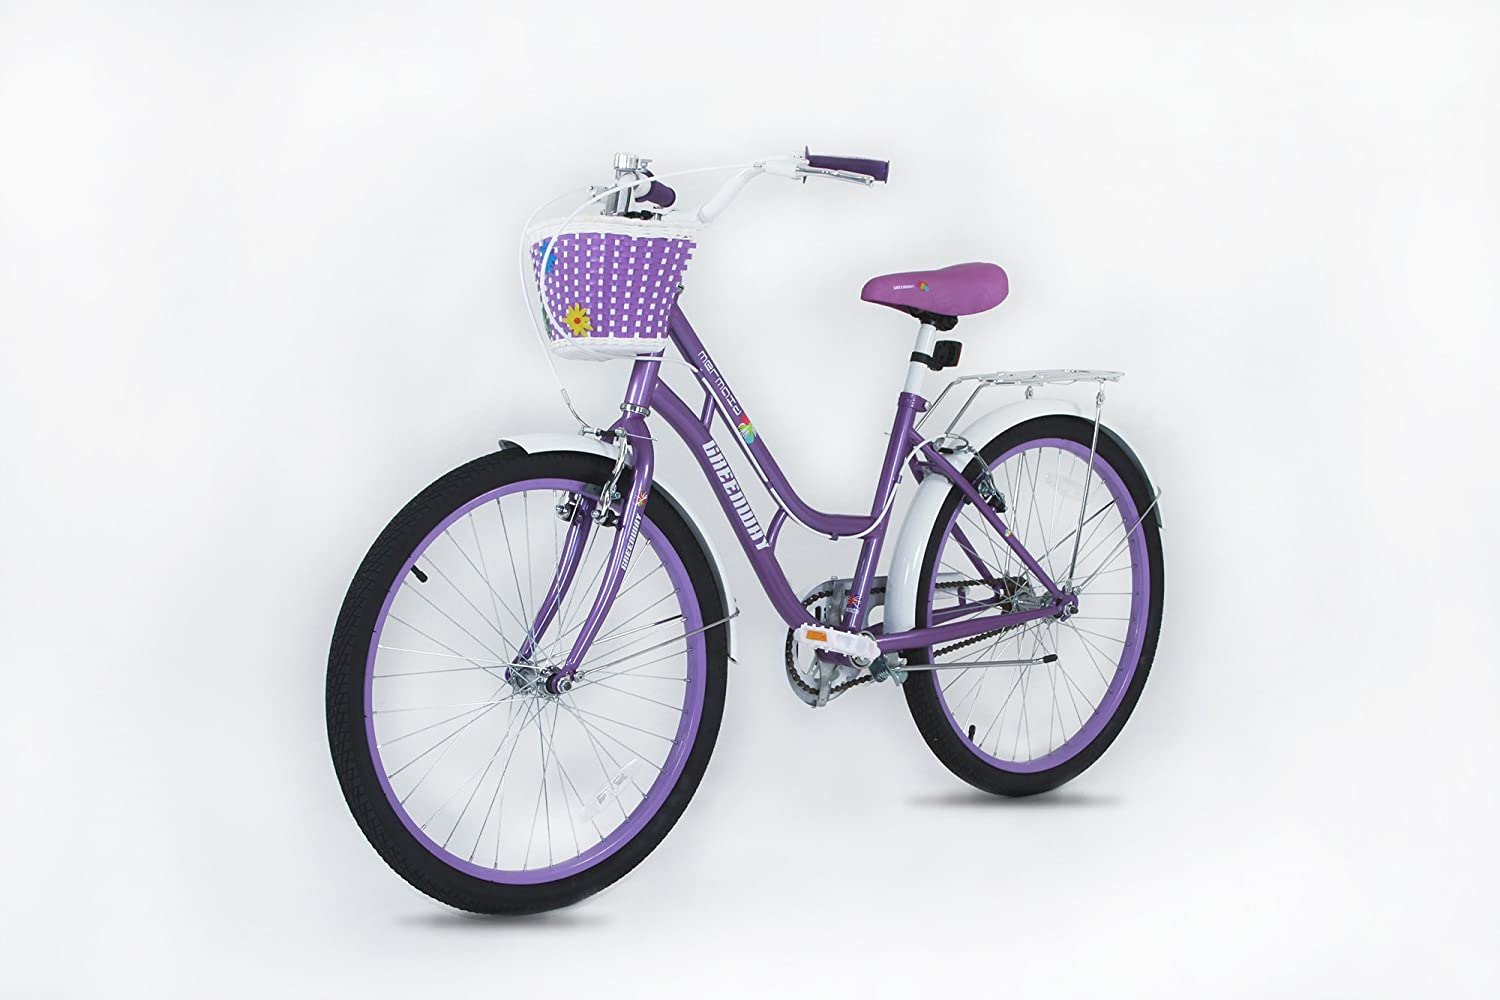 Princess Girls bike- purple 20 inch wheel Bicycle with basket - Suitable for AGE 5-12 YEARS OL D- Height 3' 10  - 4' 6